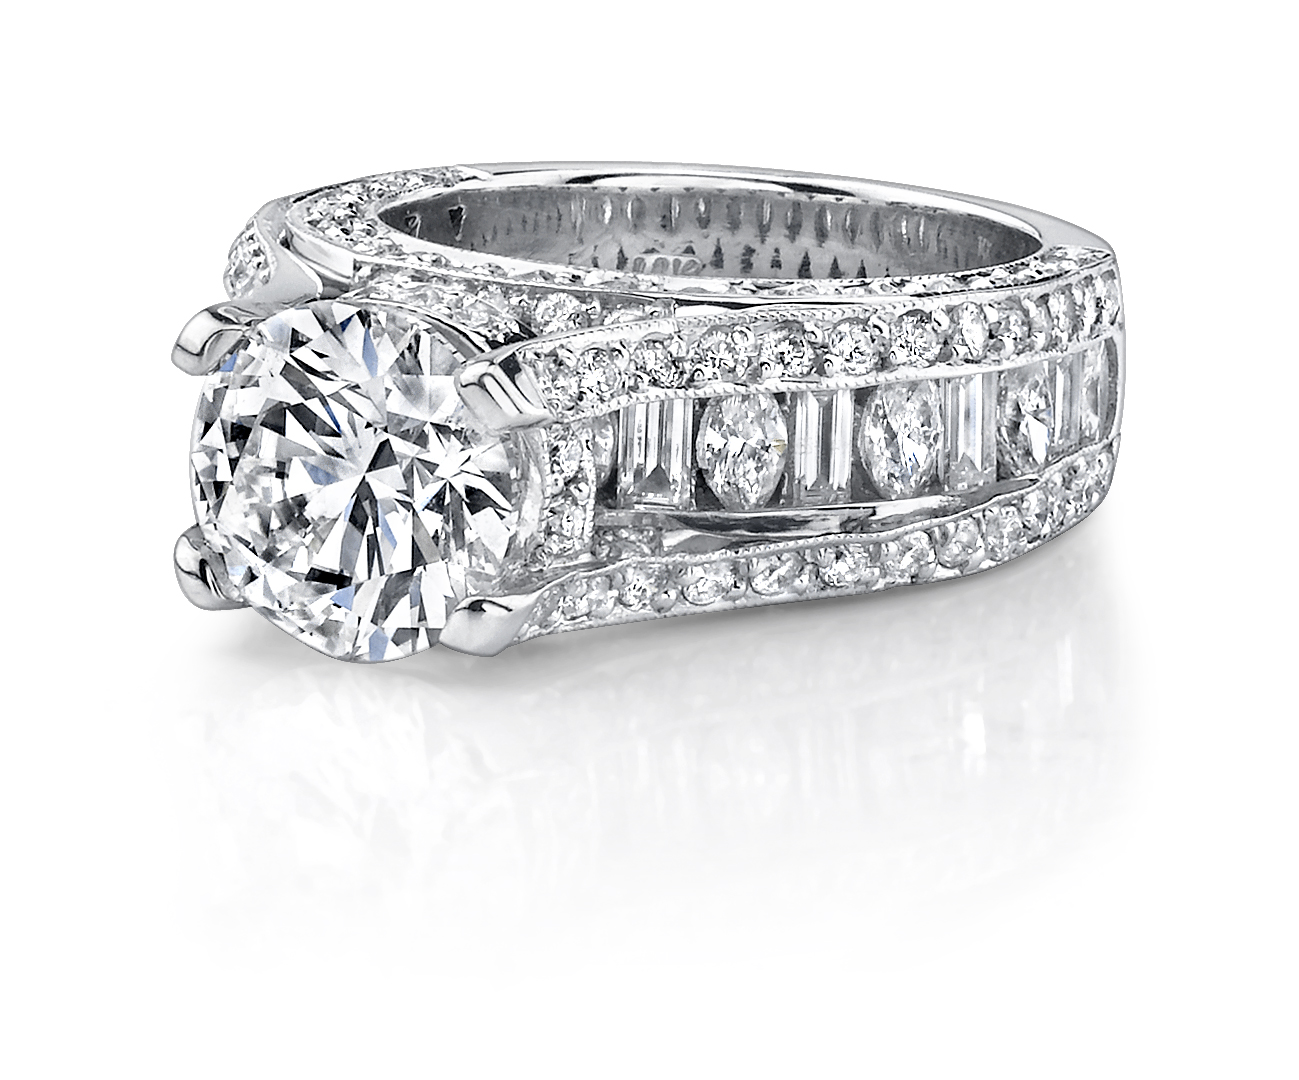 T. R. Jewelers | Lowest Prices